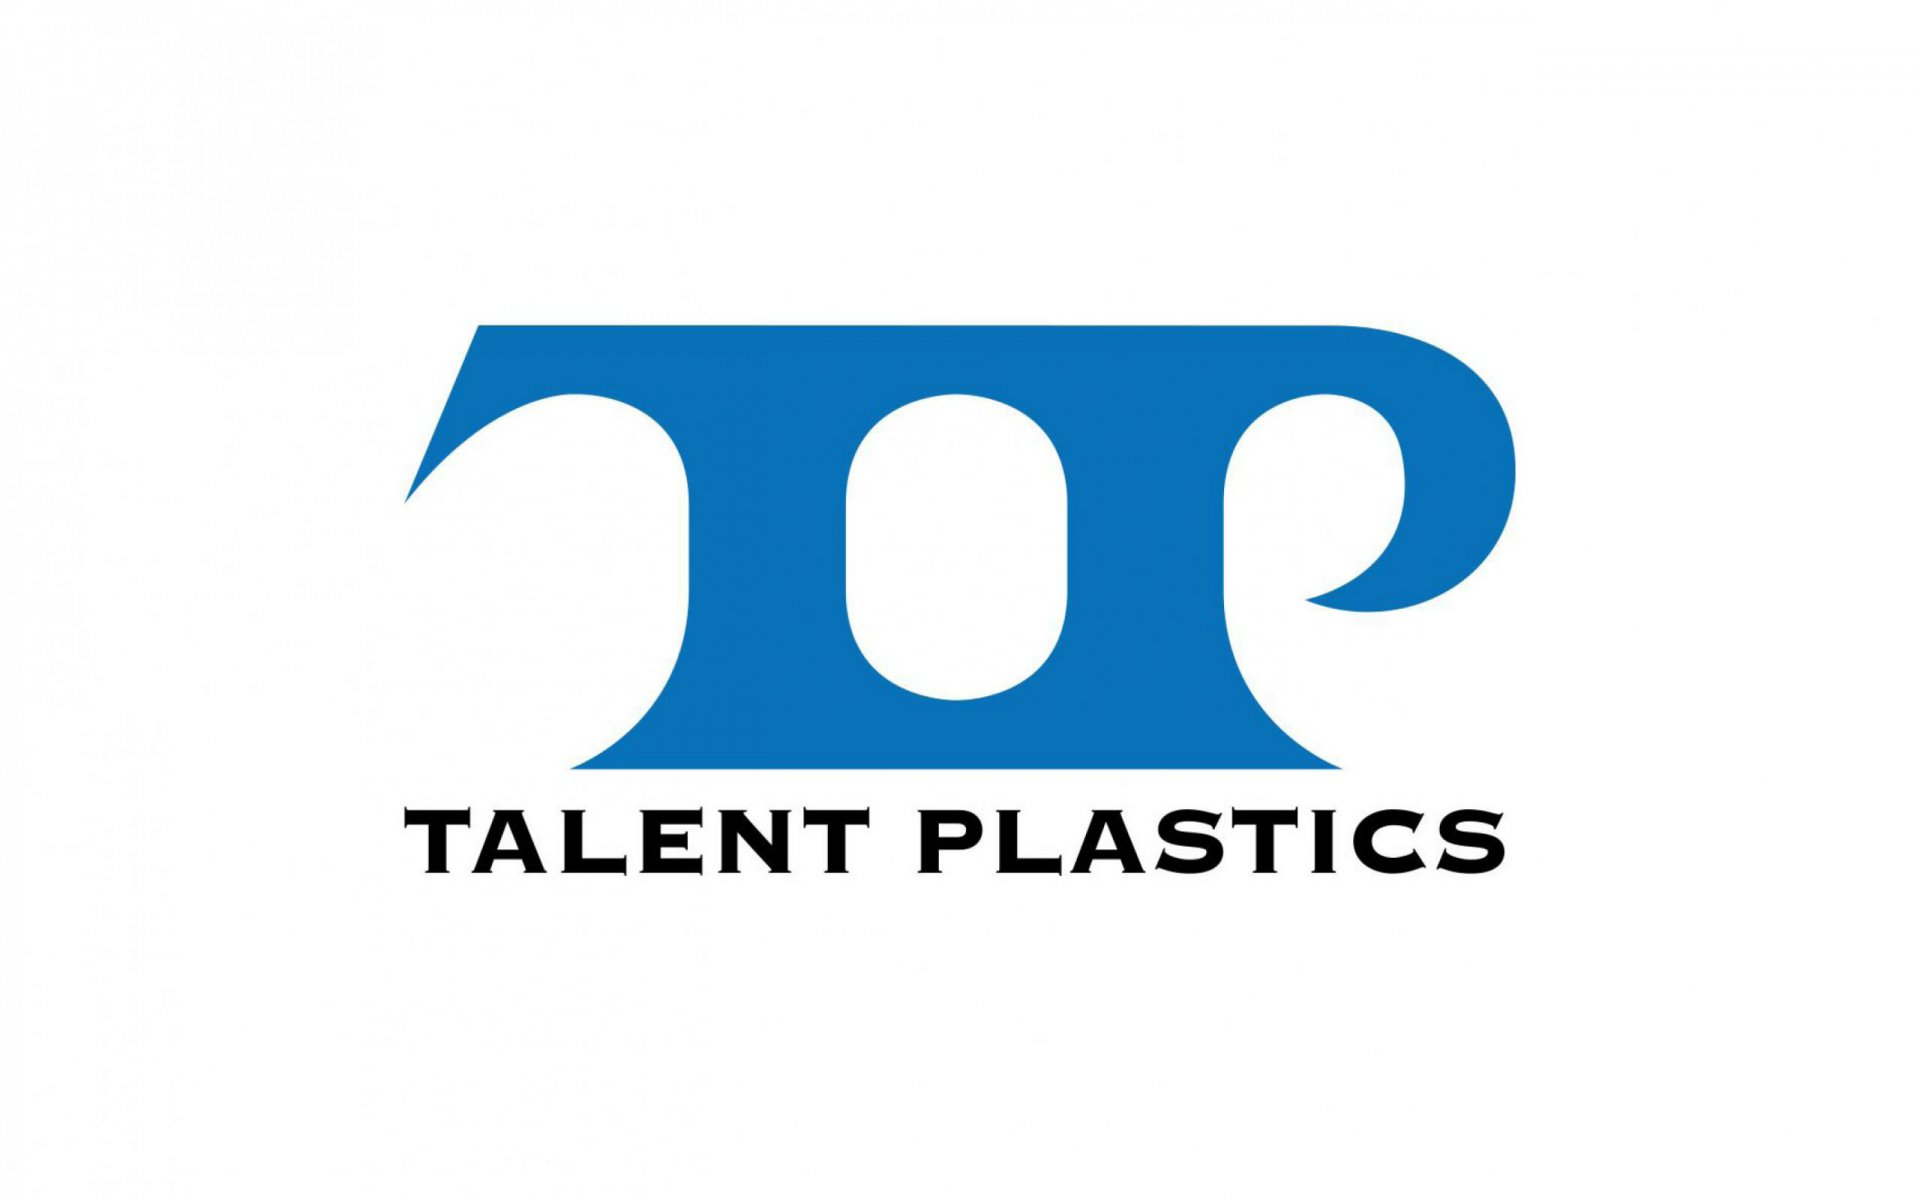 Talent-plastics-logotyp